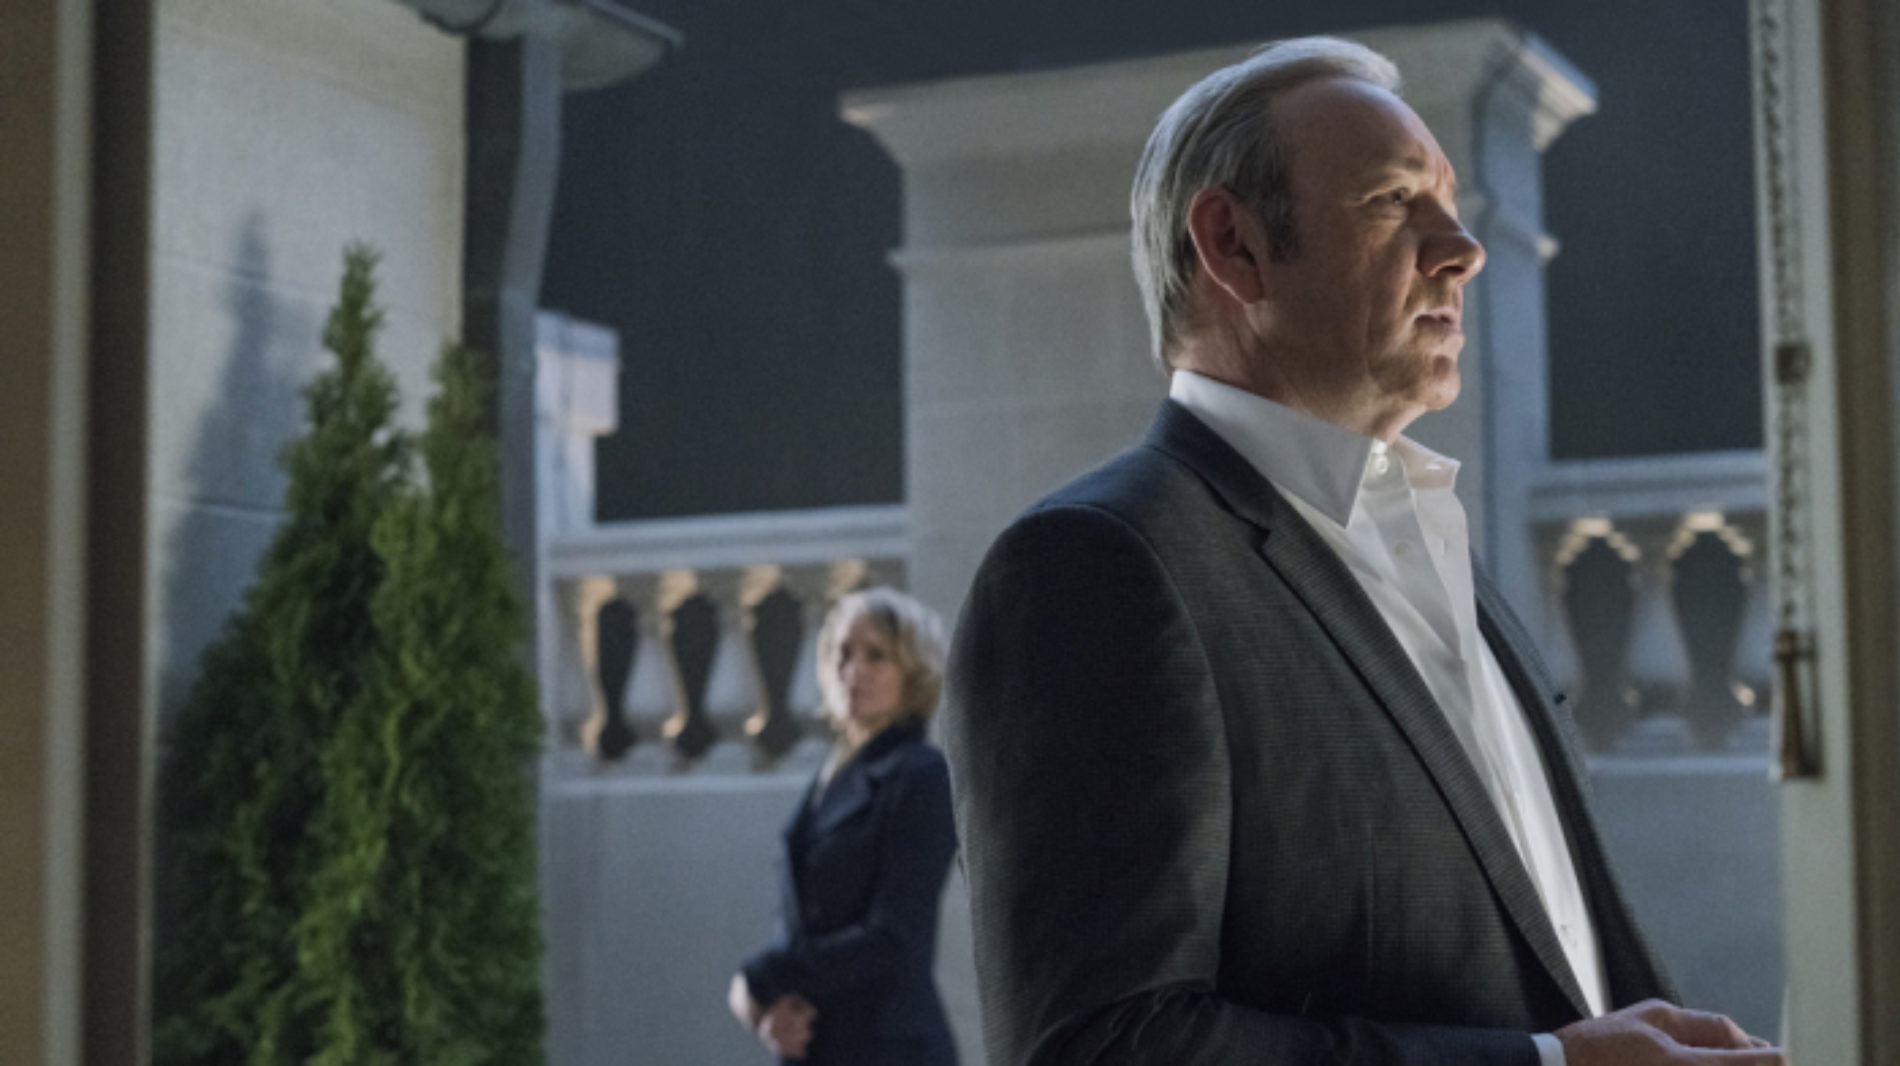 Netflix may have Kevin Spacey's Frank Underwood killed off in 'House of Cards' as actor is fired from the series